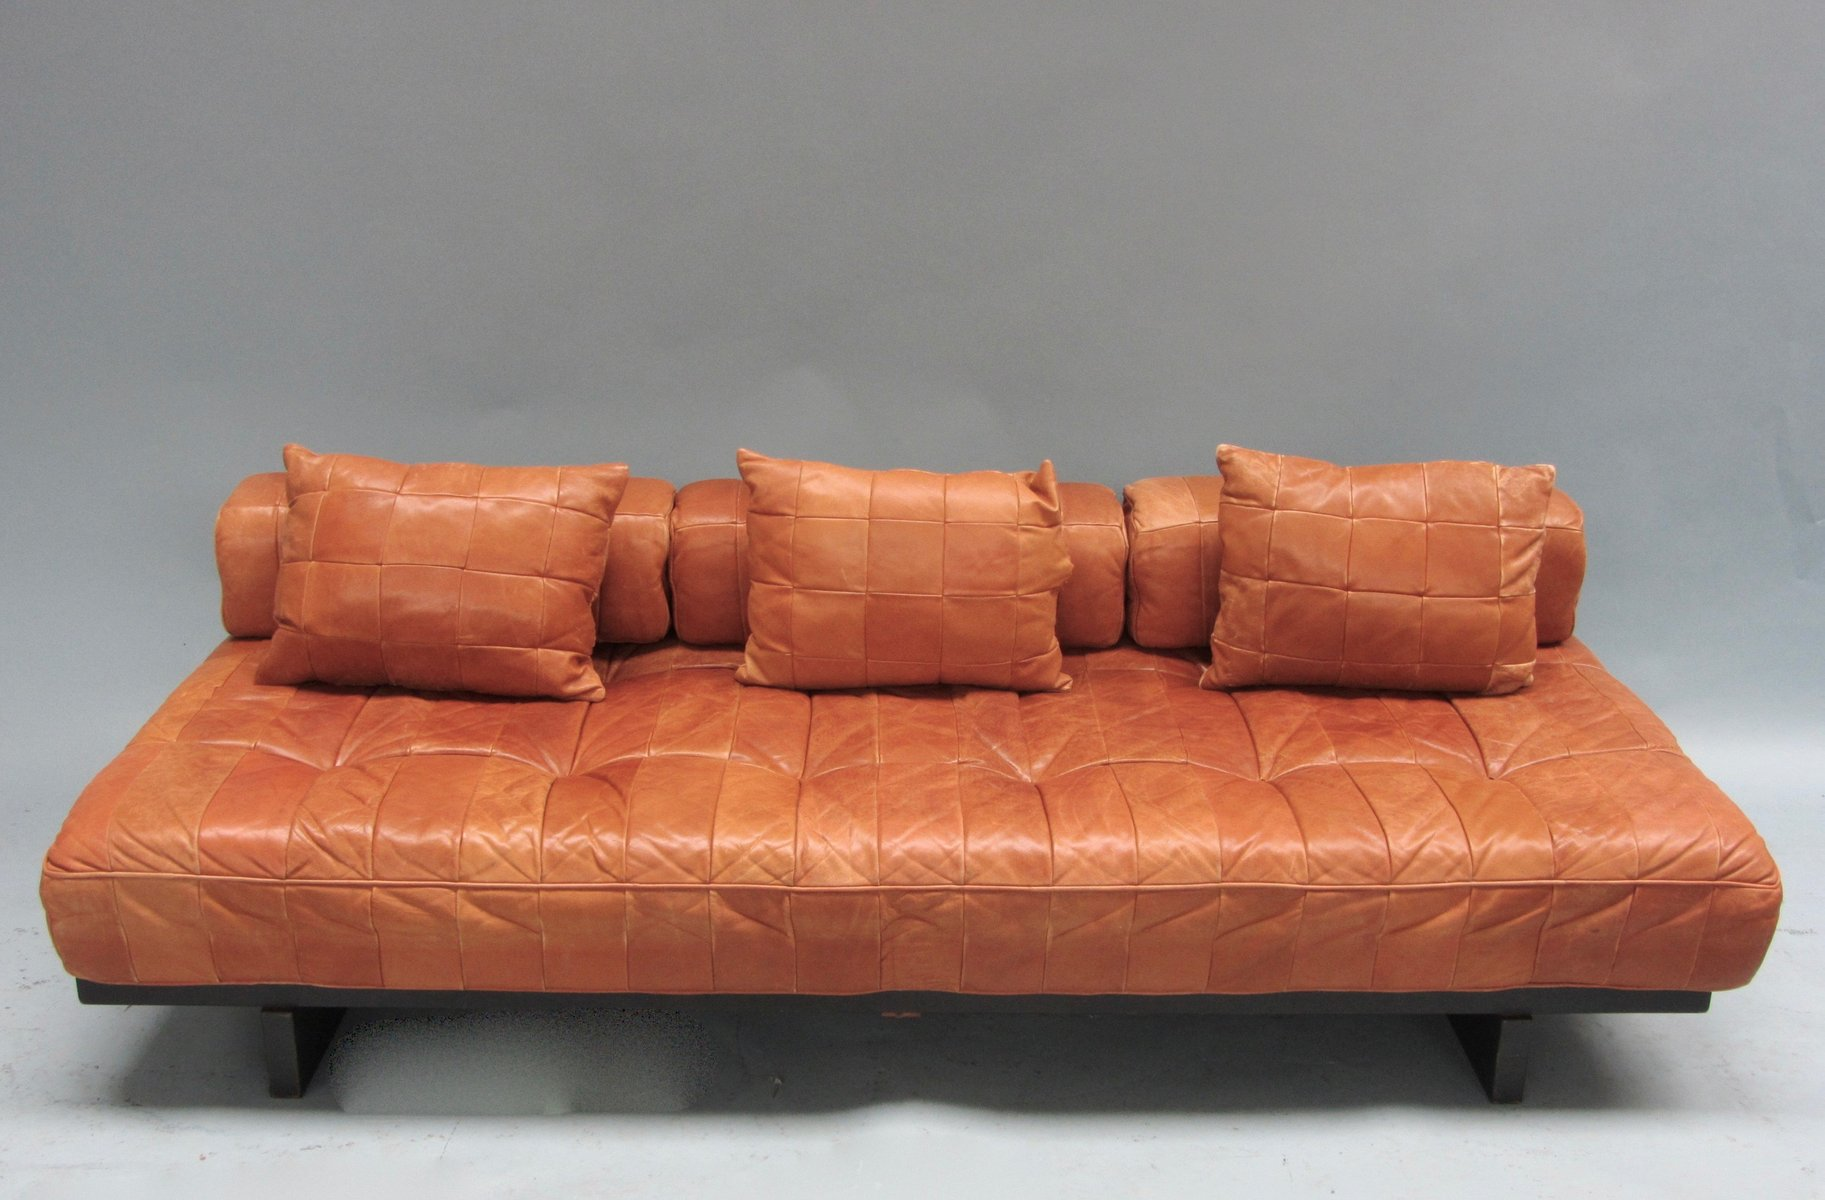 Ds 80 daybed sofa in patchwork leather from de sede 1970s for Sofa 1 80 breit